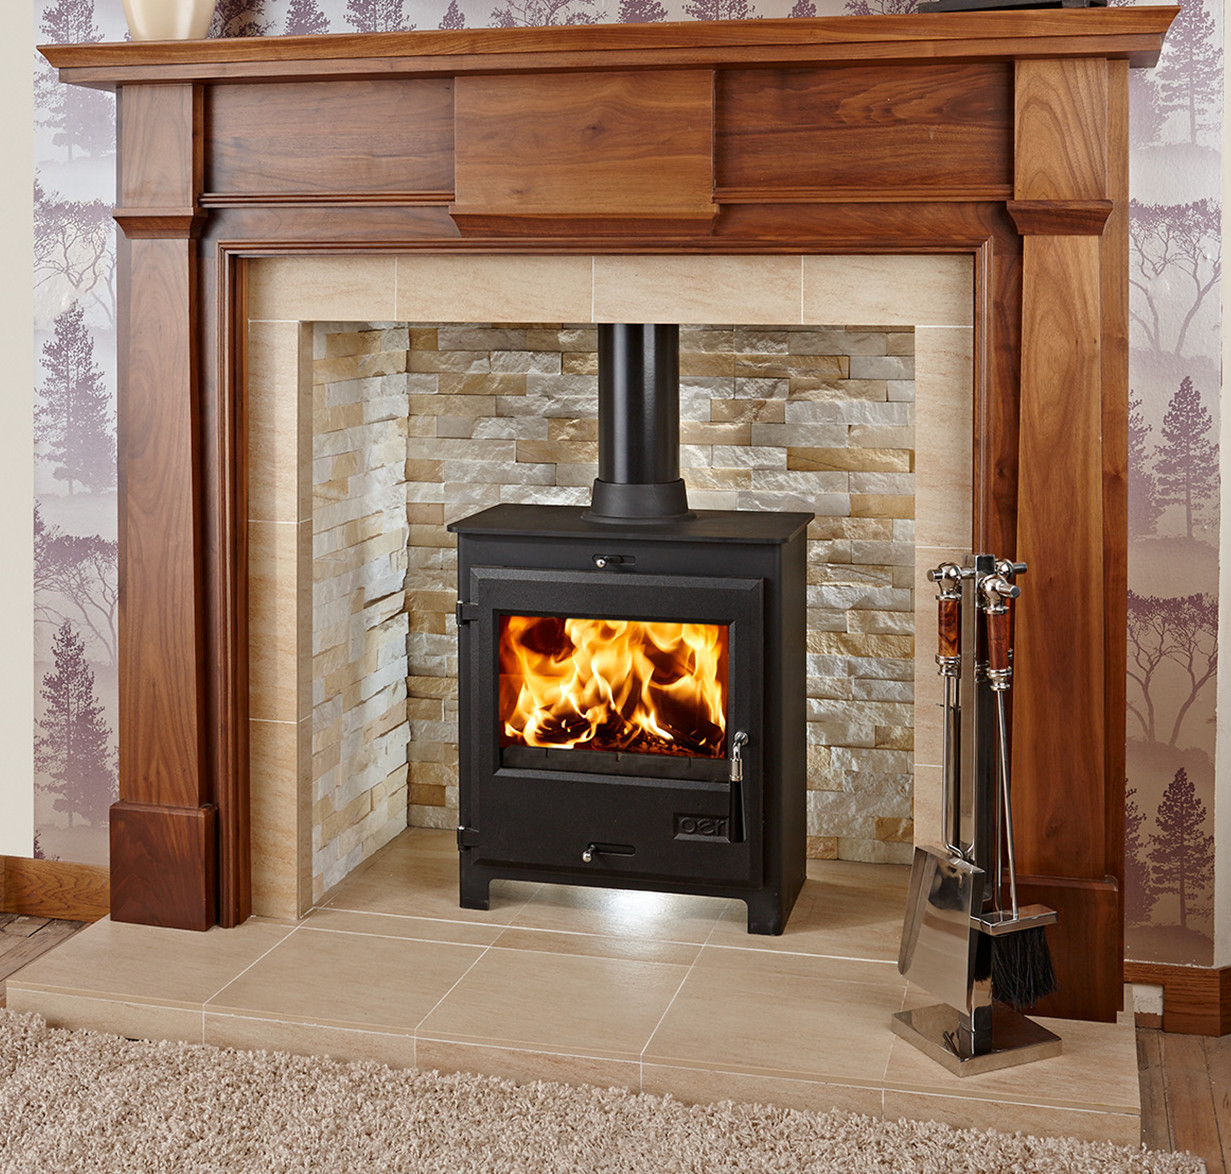 Solid Wood Fire Surrounds Handmade For Your Home Oer Flagship Kensingston Fireplace